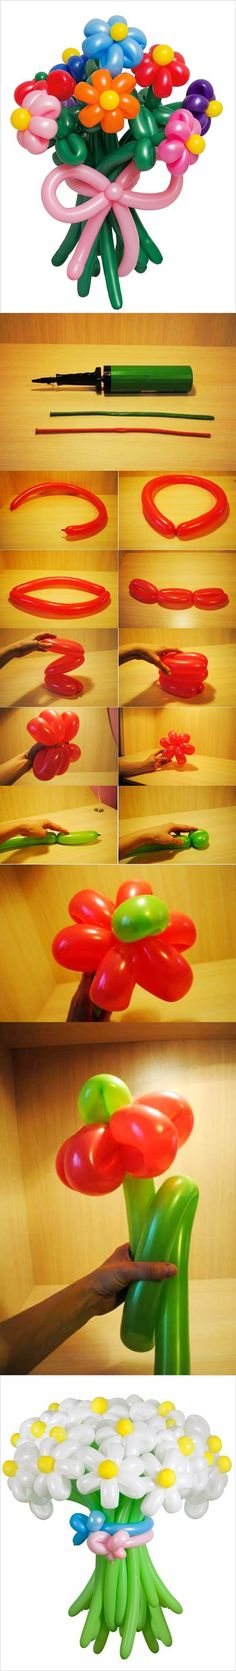 Flores con globos - DIY Balloon Flowers https://www.facebook.com/icreativeideas                                                                                                                                                                                 Más